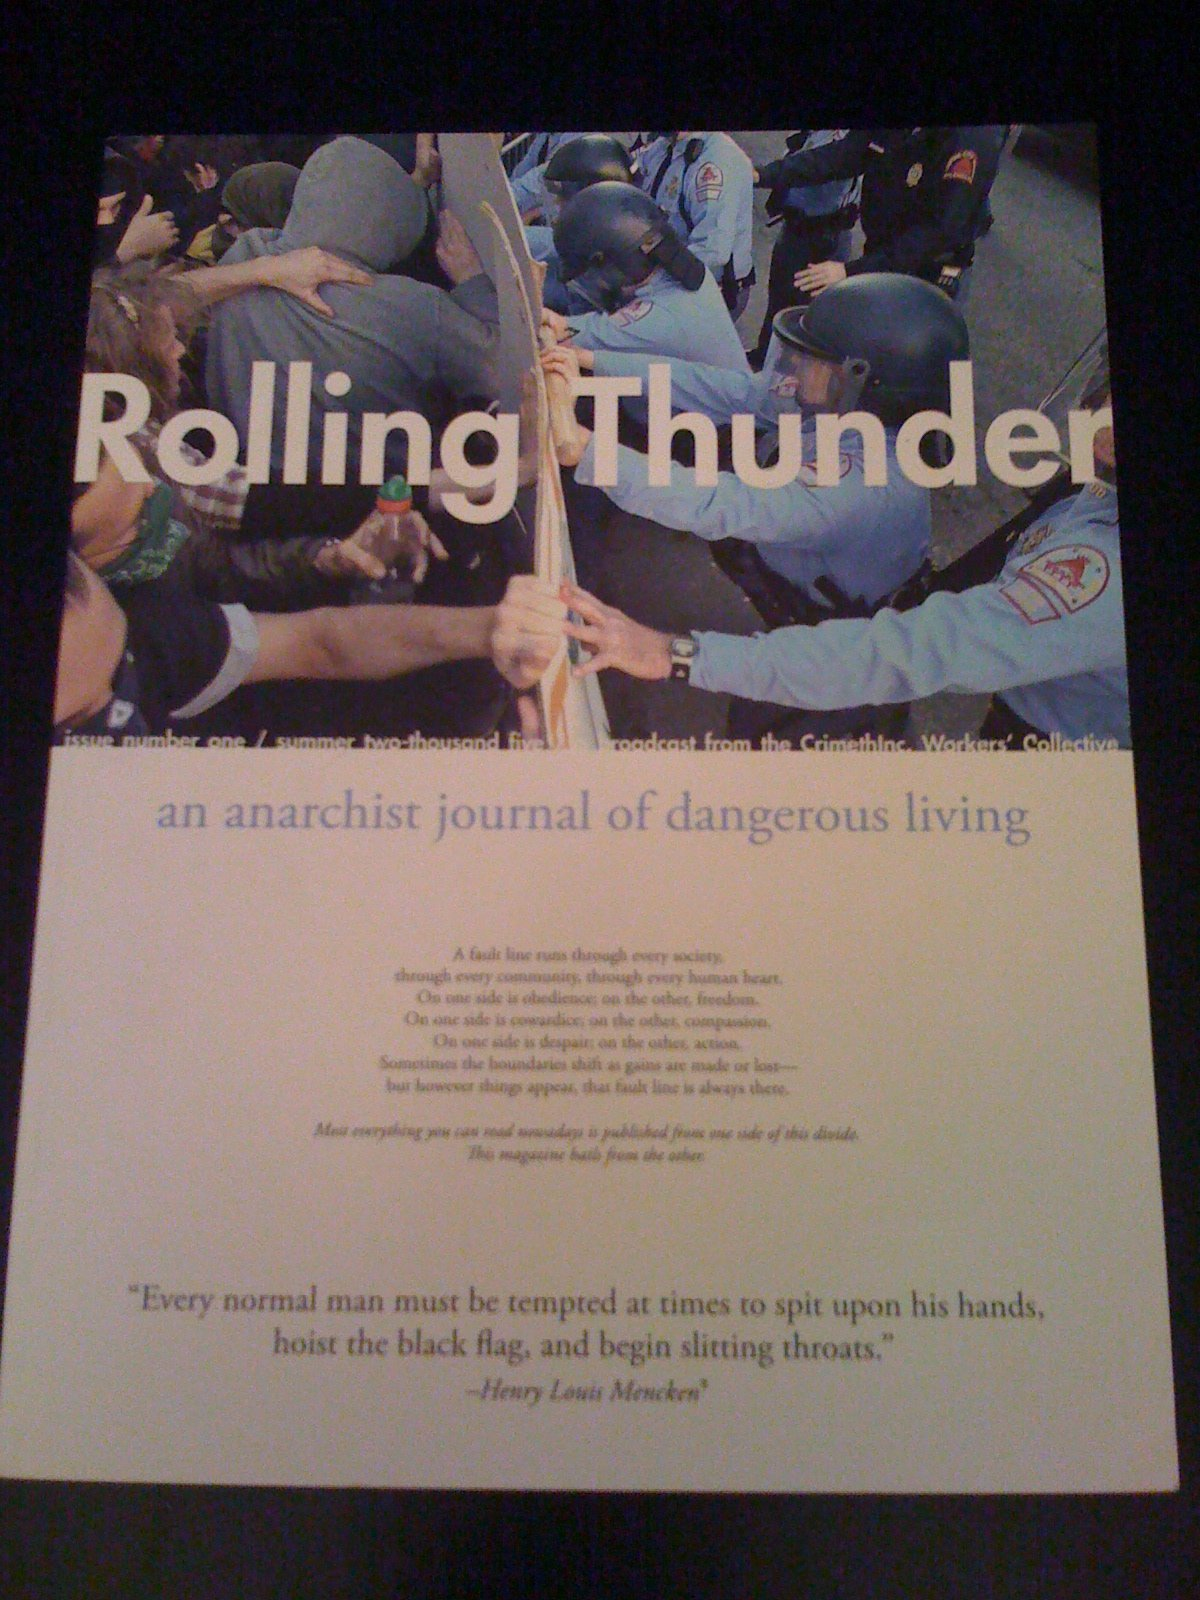 Rolling Thunder An Anarchist Journal of Dangerous Living, CrimethInc